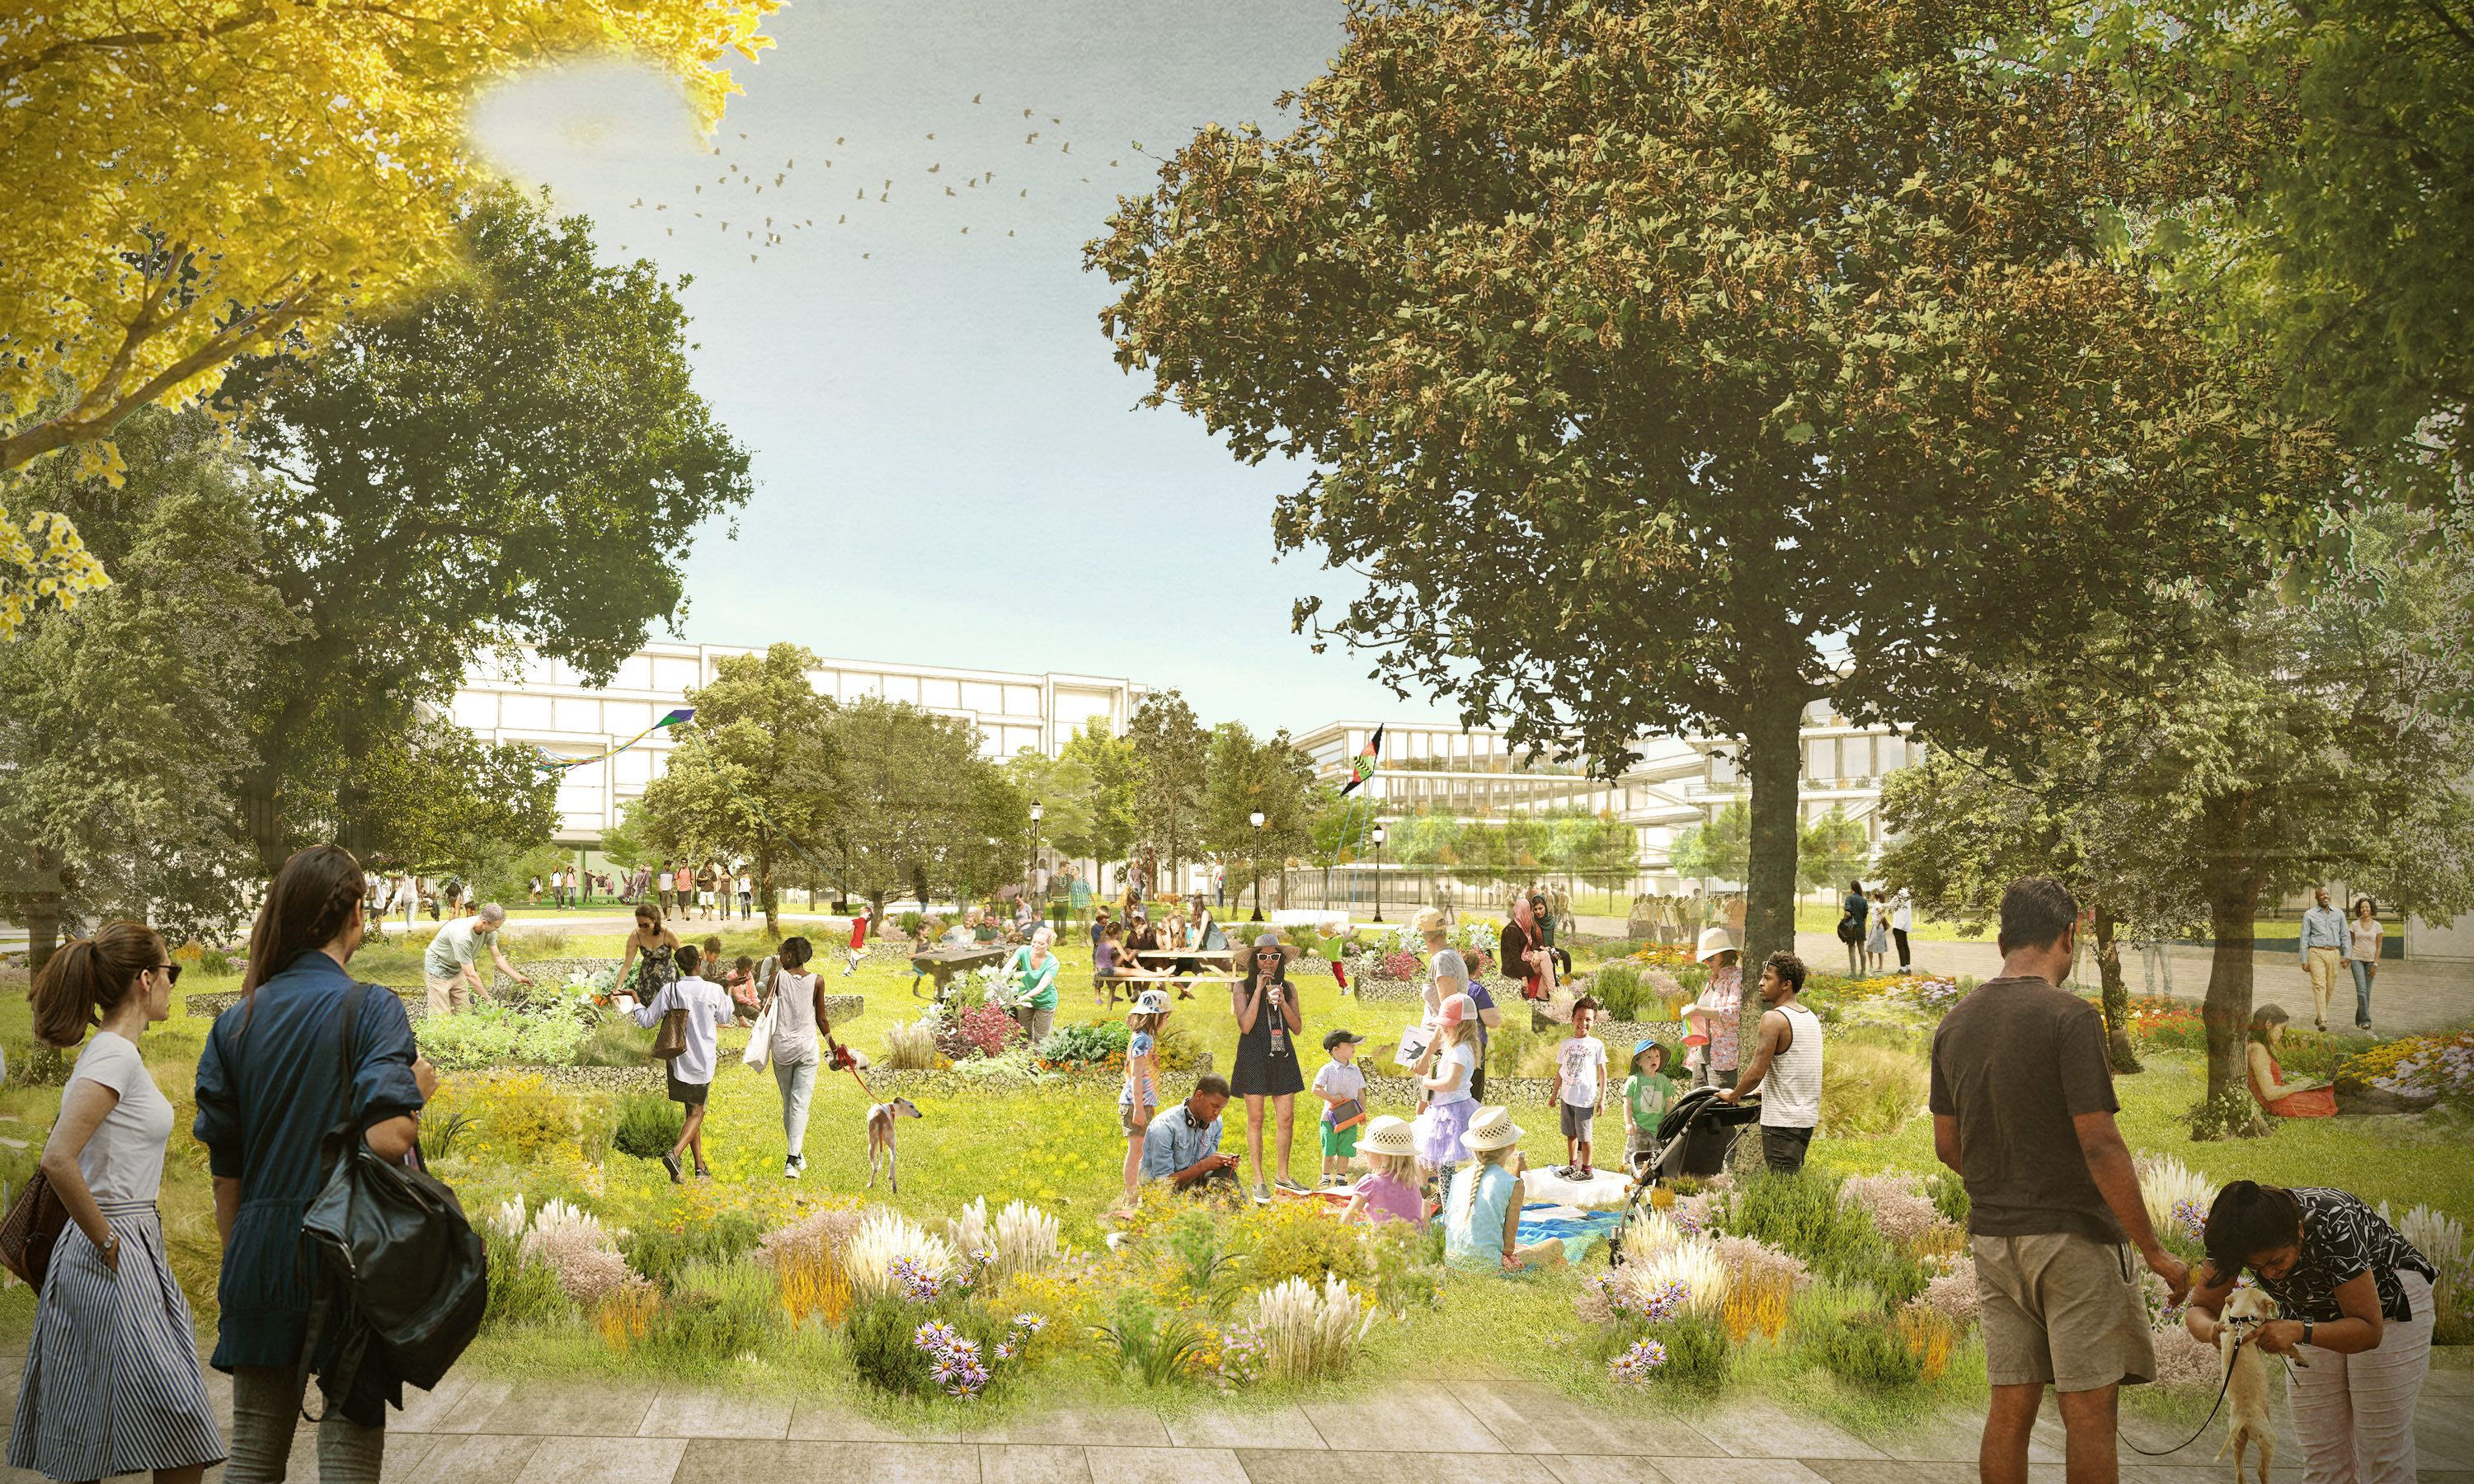 facebook planning home and retail expansion to headquarters the social network s willow campus plan would completely redevelop the 21 building 56 acre block presently known as the